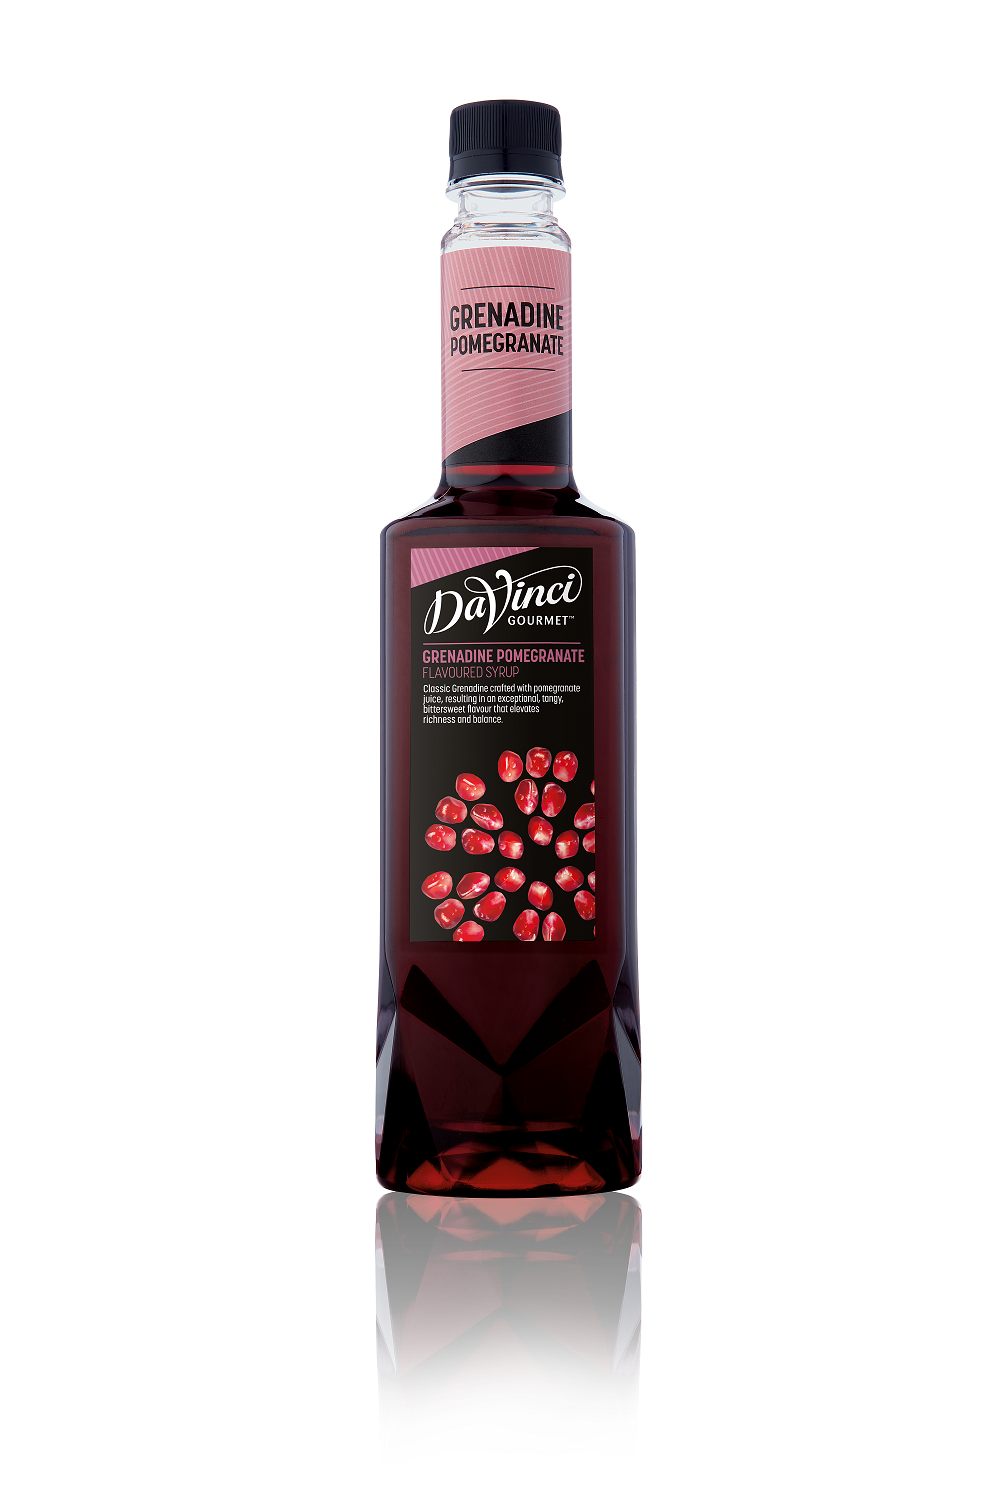 Da Vinci Gourmet Grenadine Pomegranate Flavoured Syrup 750ml  B1T1